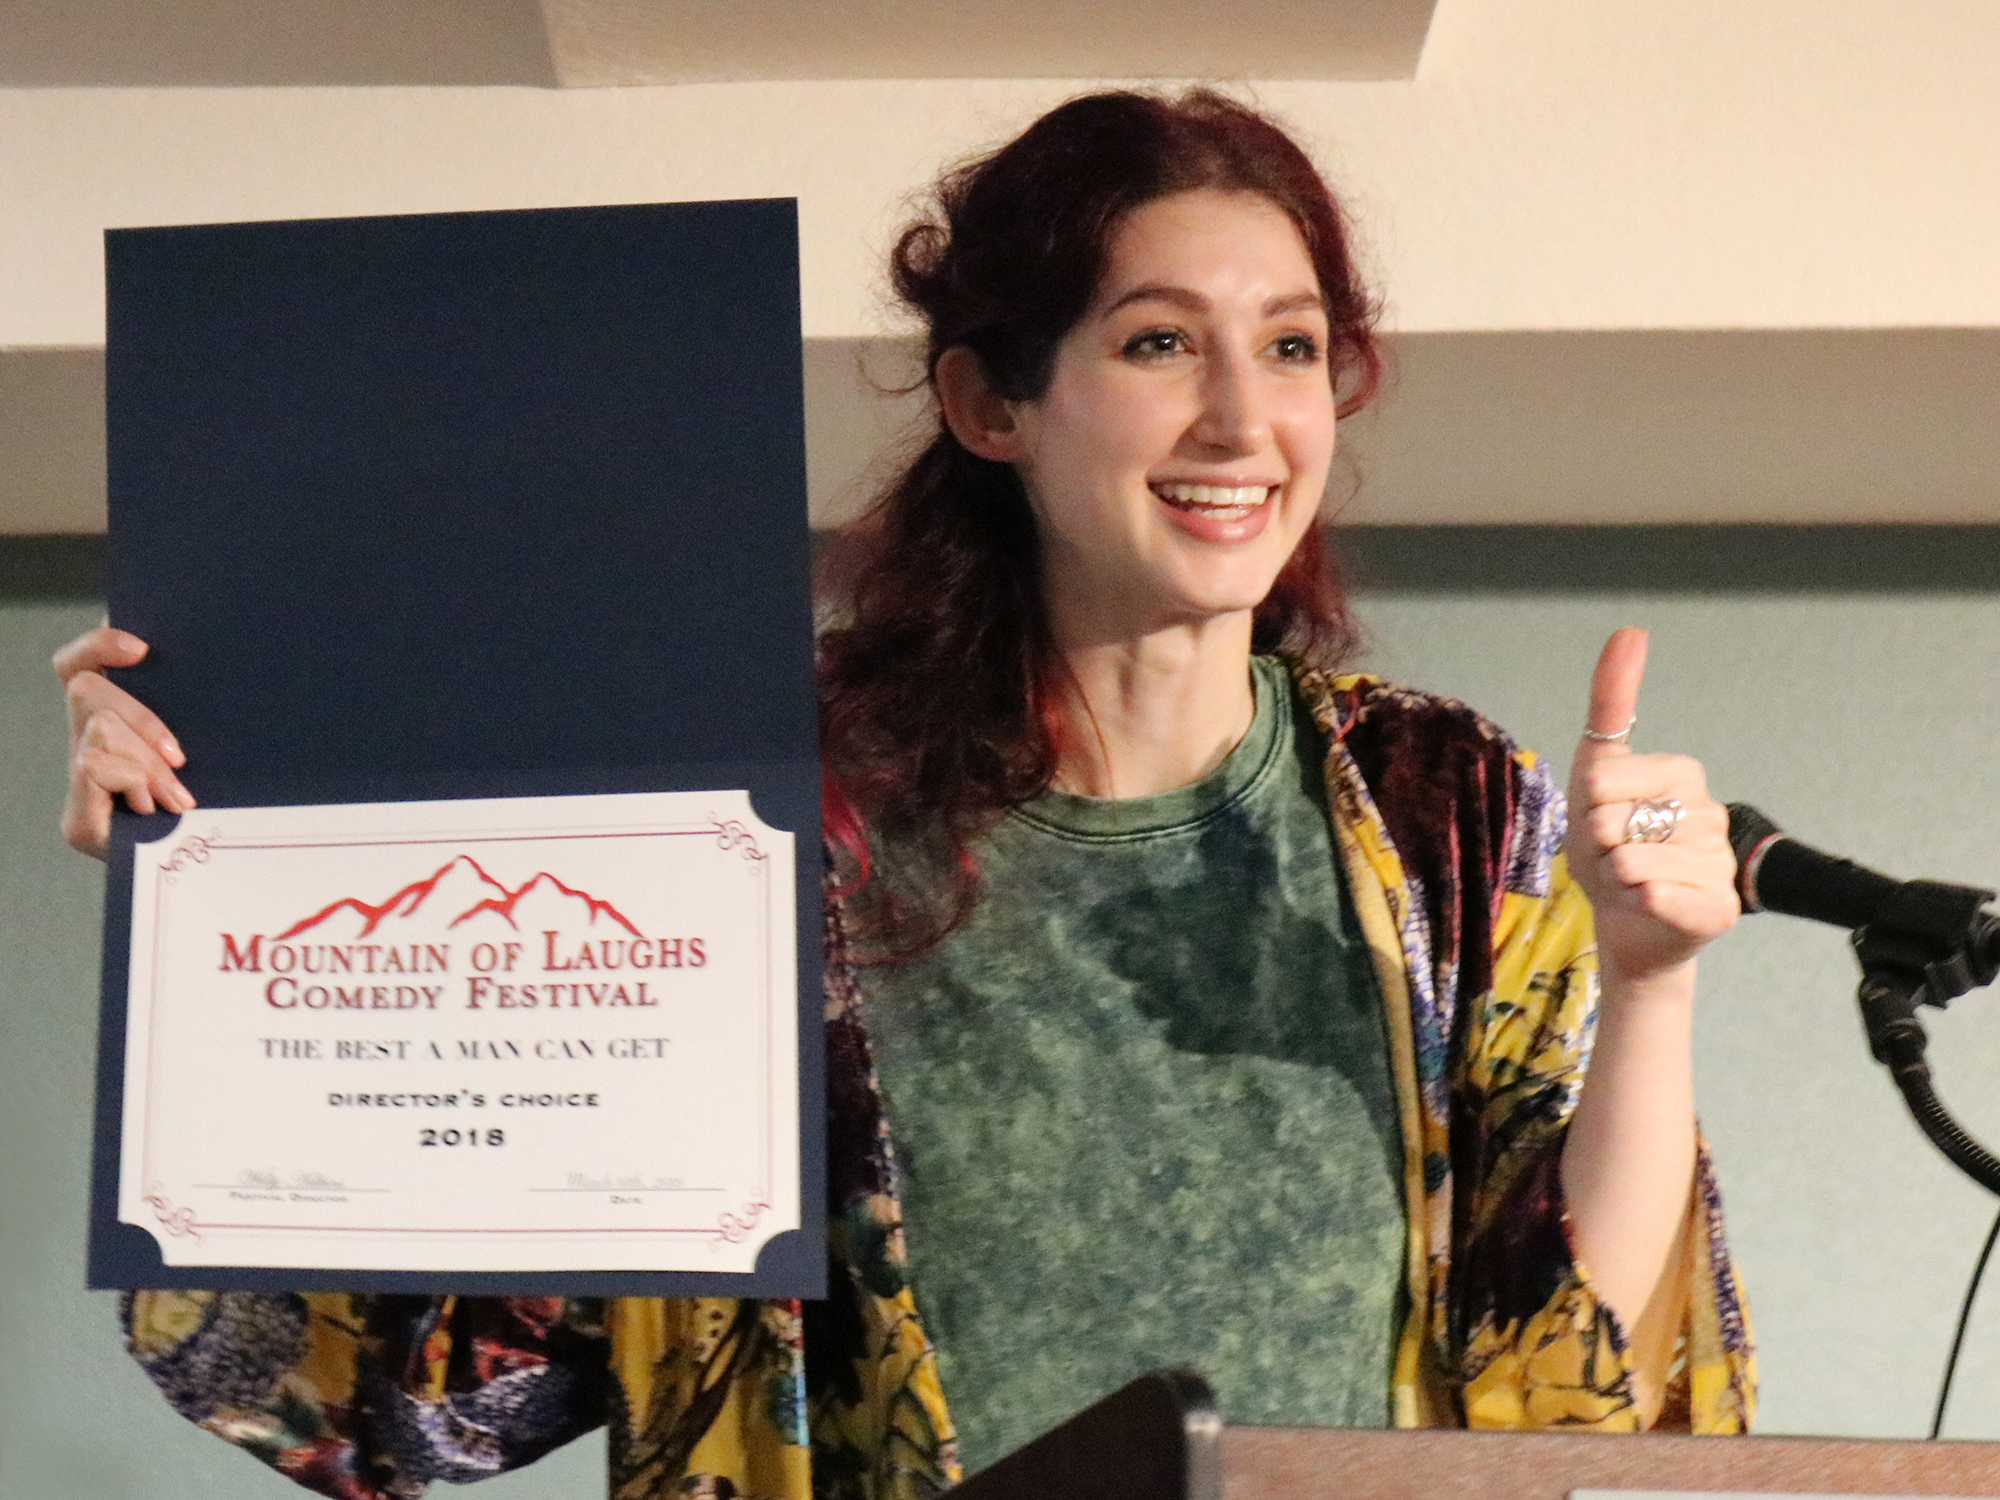 Geena Matuson (@geenamatuson) presented with Director's Choice Award at Breaking Fate Entertainment's Mountain of Laughs Comedy Film Festival in Gatlinburg, TN, 2018.